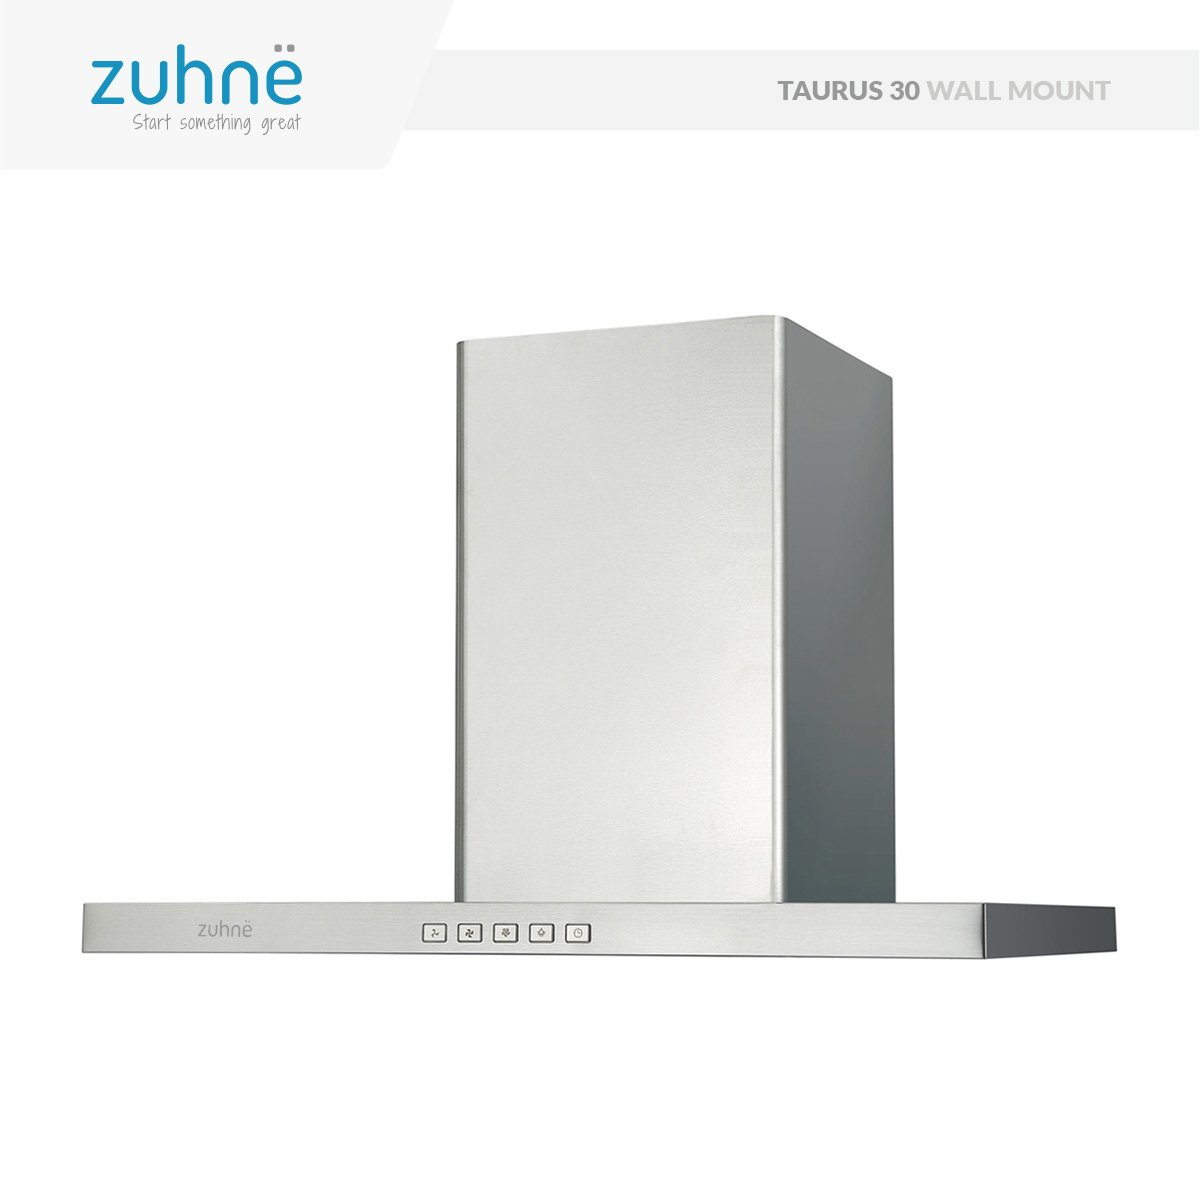 Zuhne Taurus 30 inch Kitchen Wall Mount Vented/ Ductless Stainless Steel Range Hood or Stove Vent with Energy Saving Touch Control & LED Lights by Zuhne (Image #6)